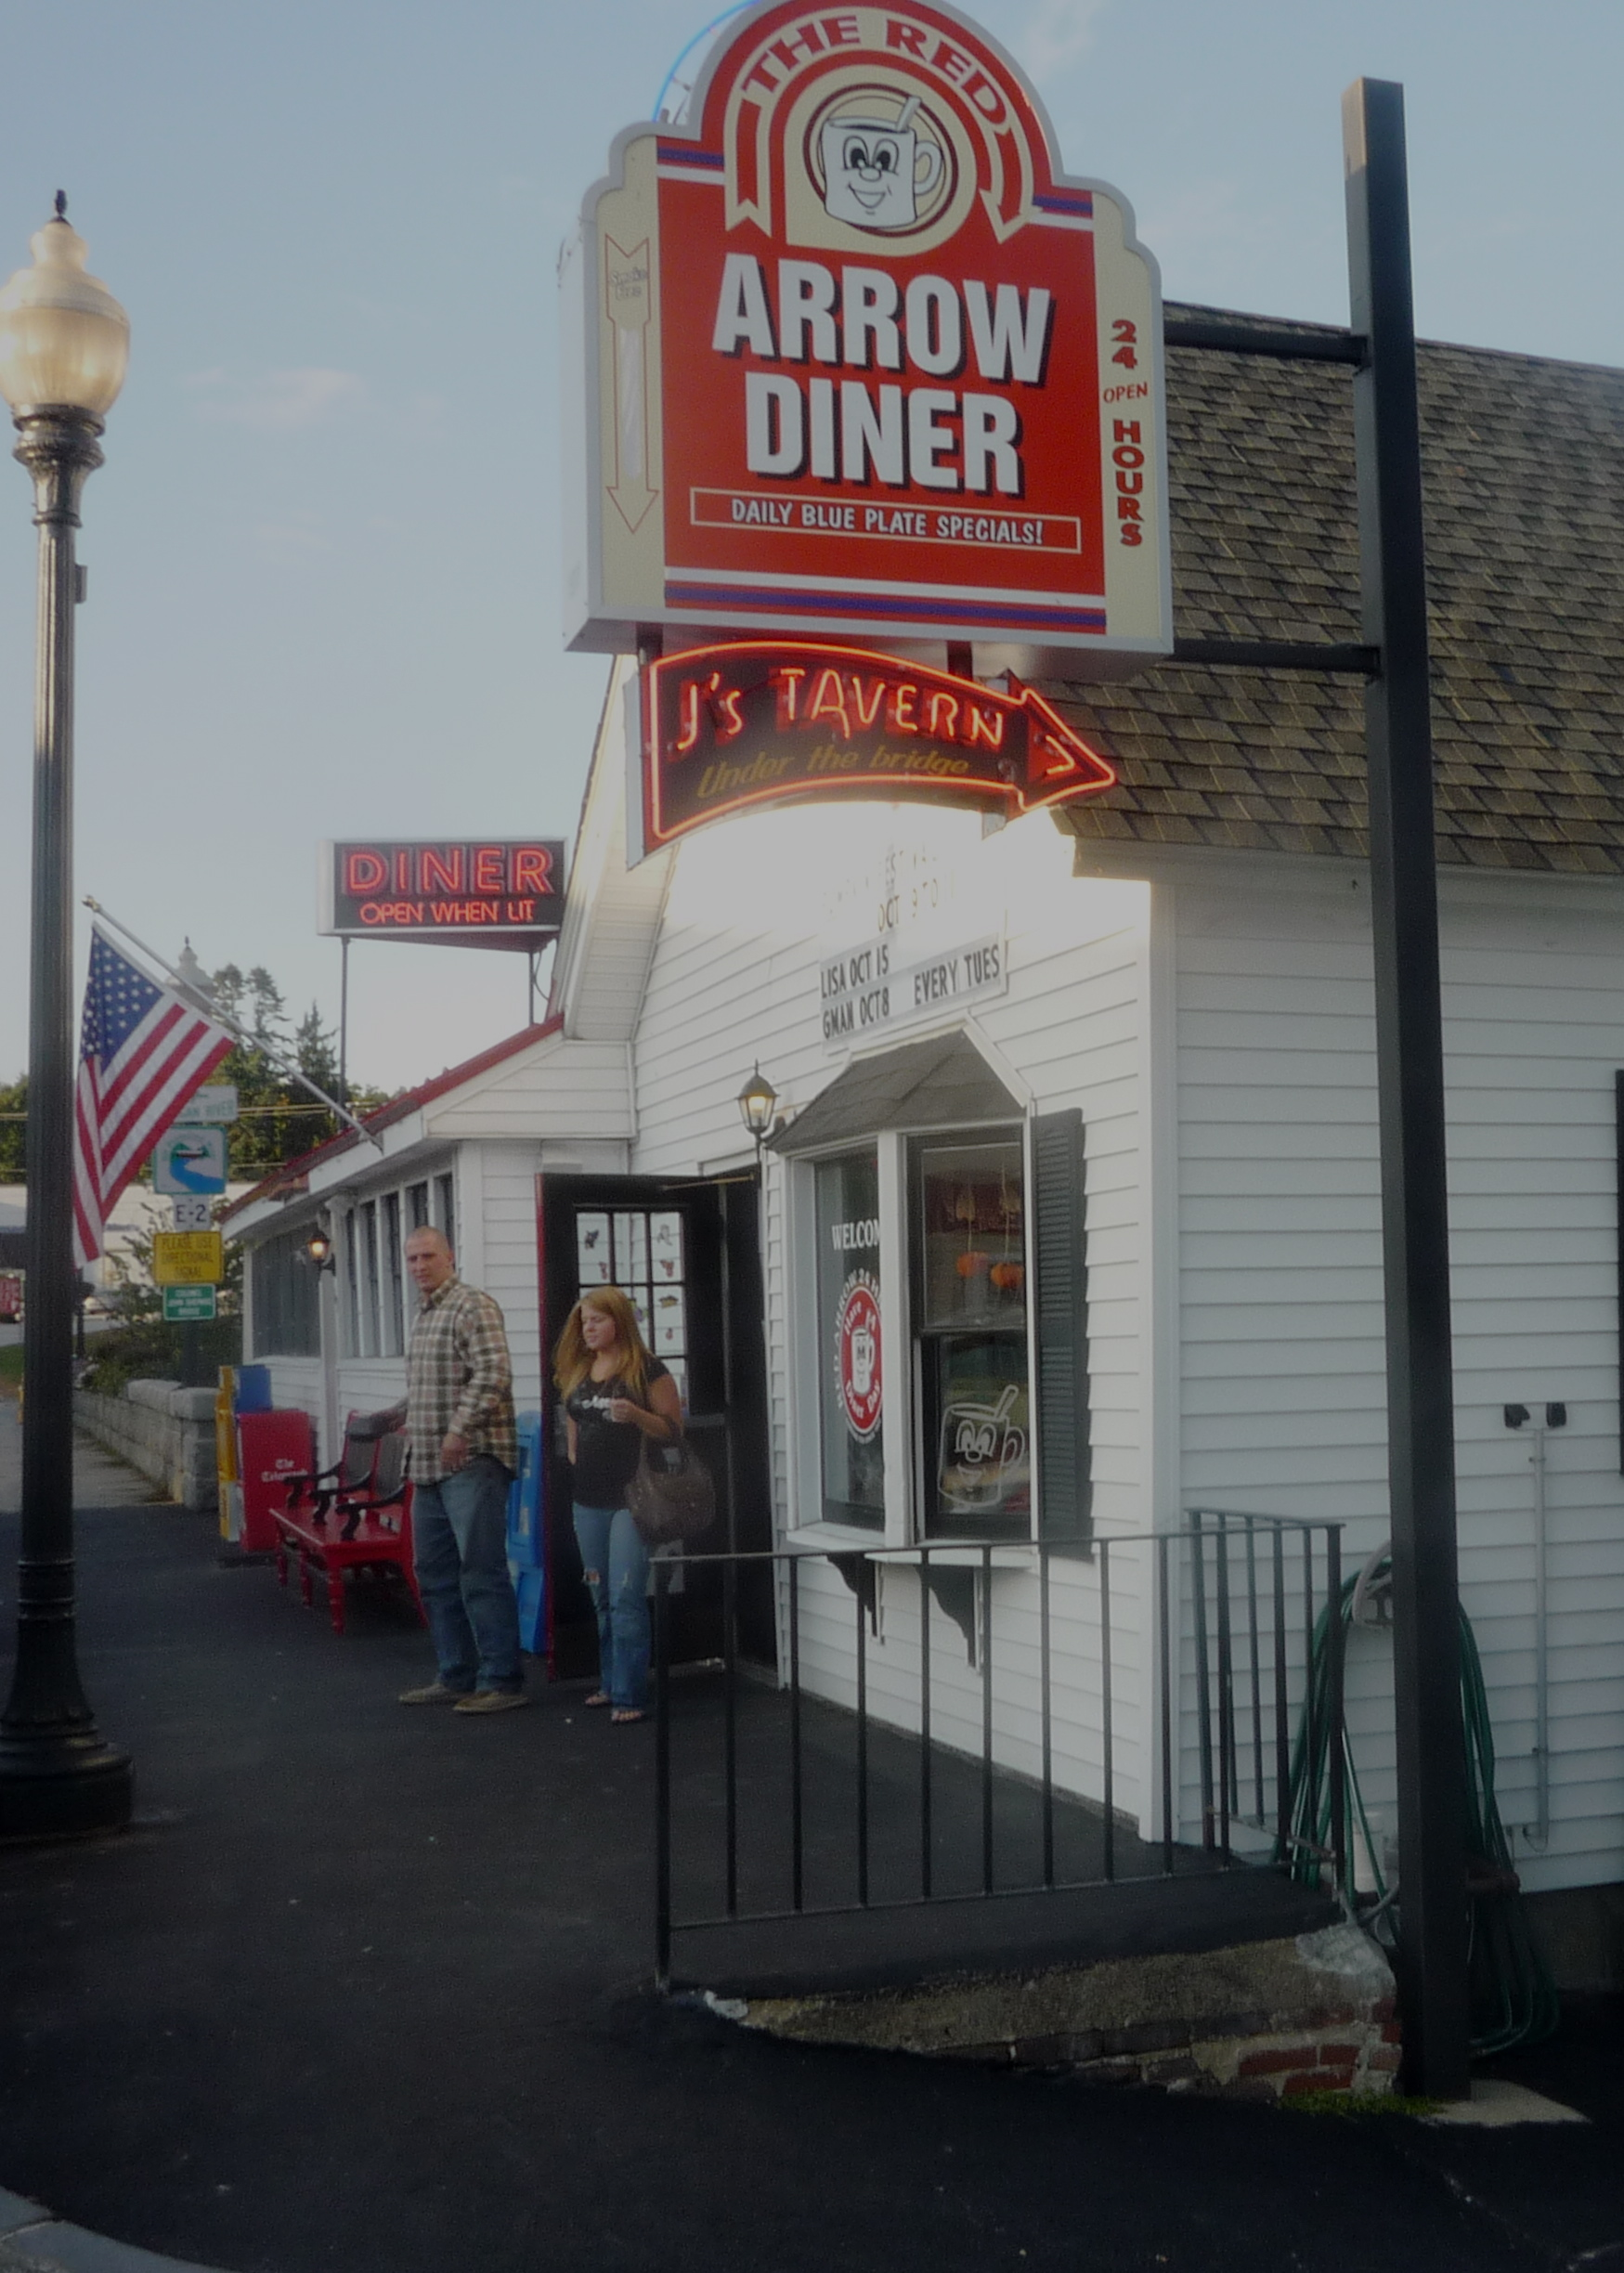 Feasting On A Dining Bargain At The Red Arrow Diner, Milford, N.H.